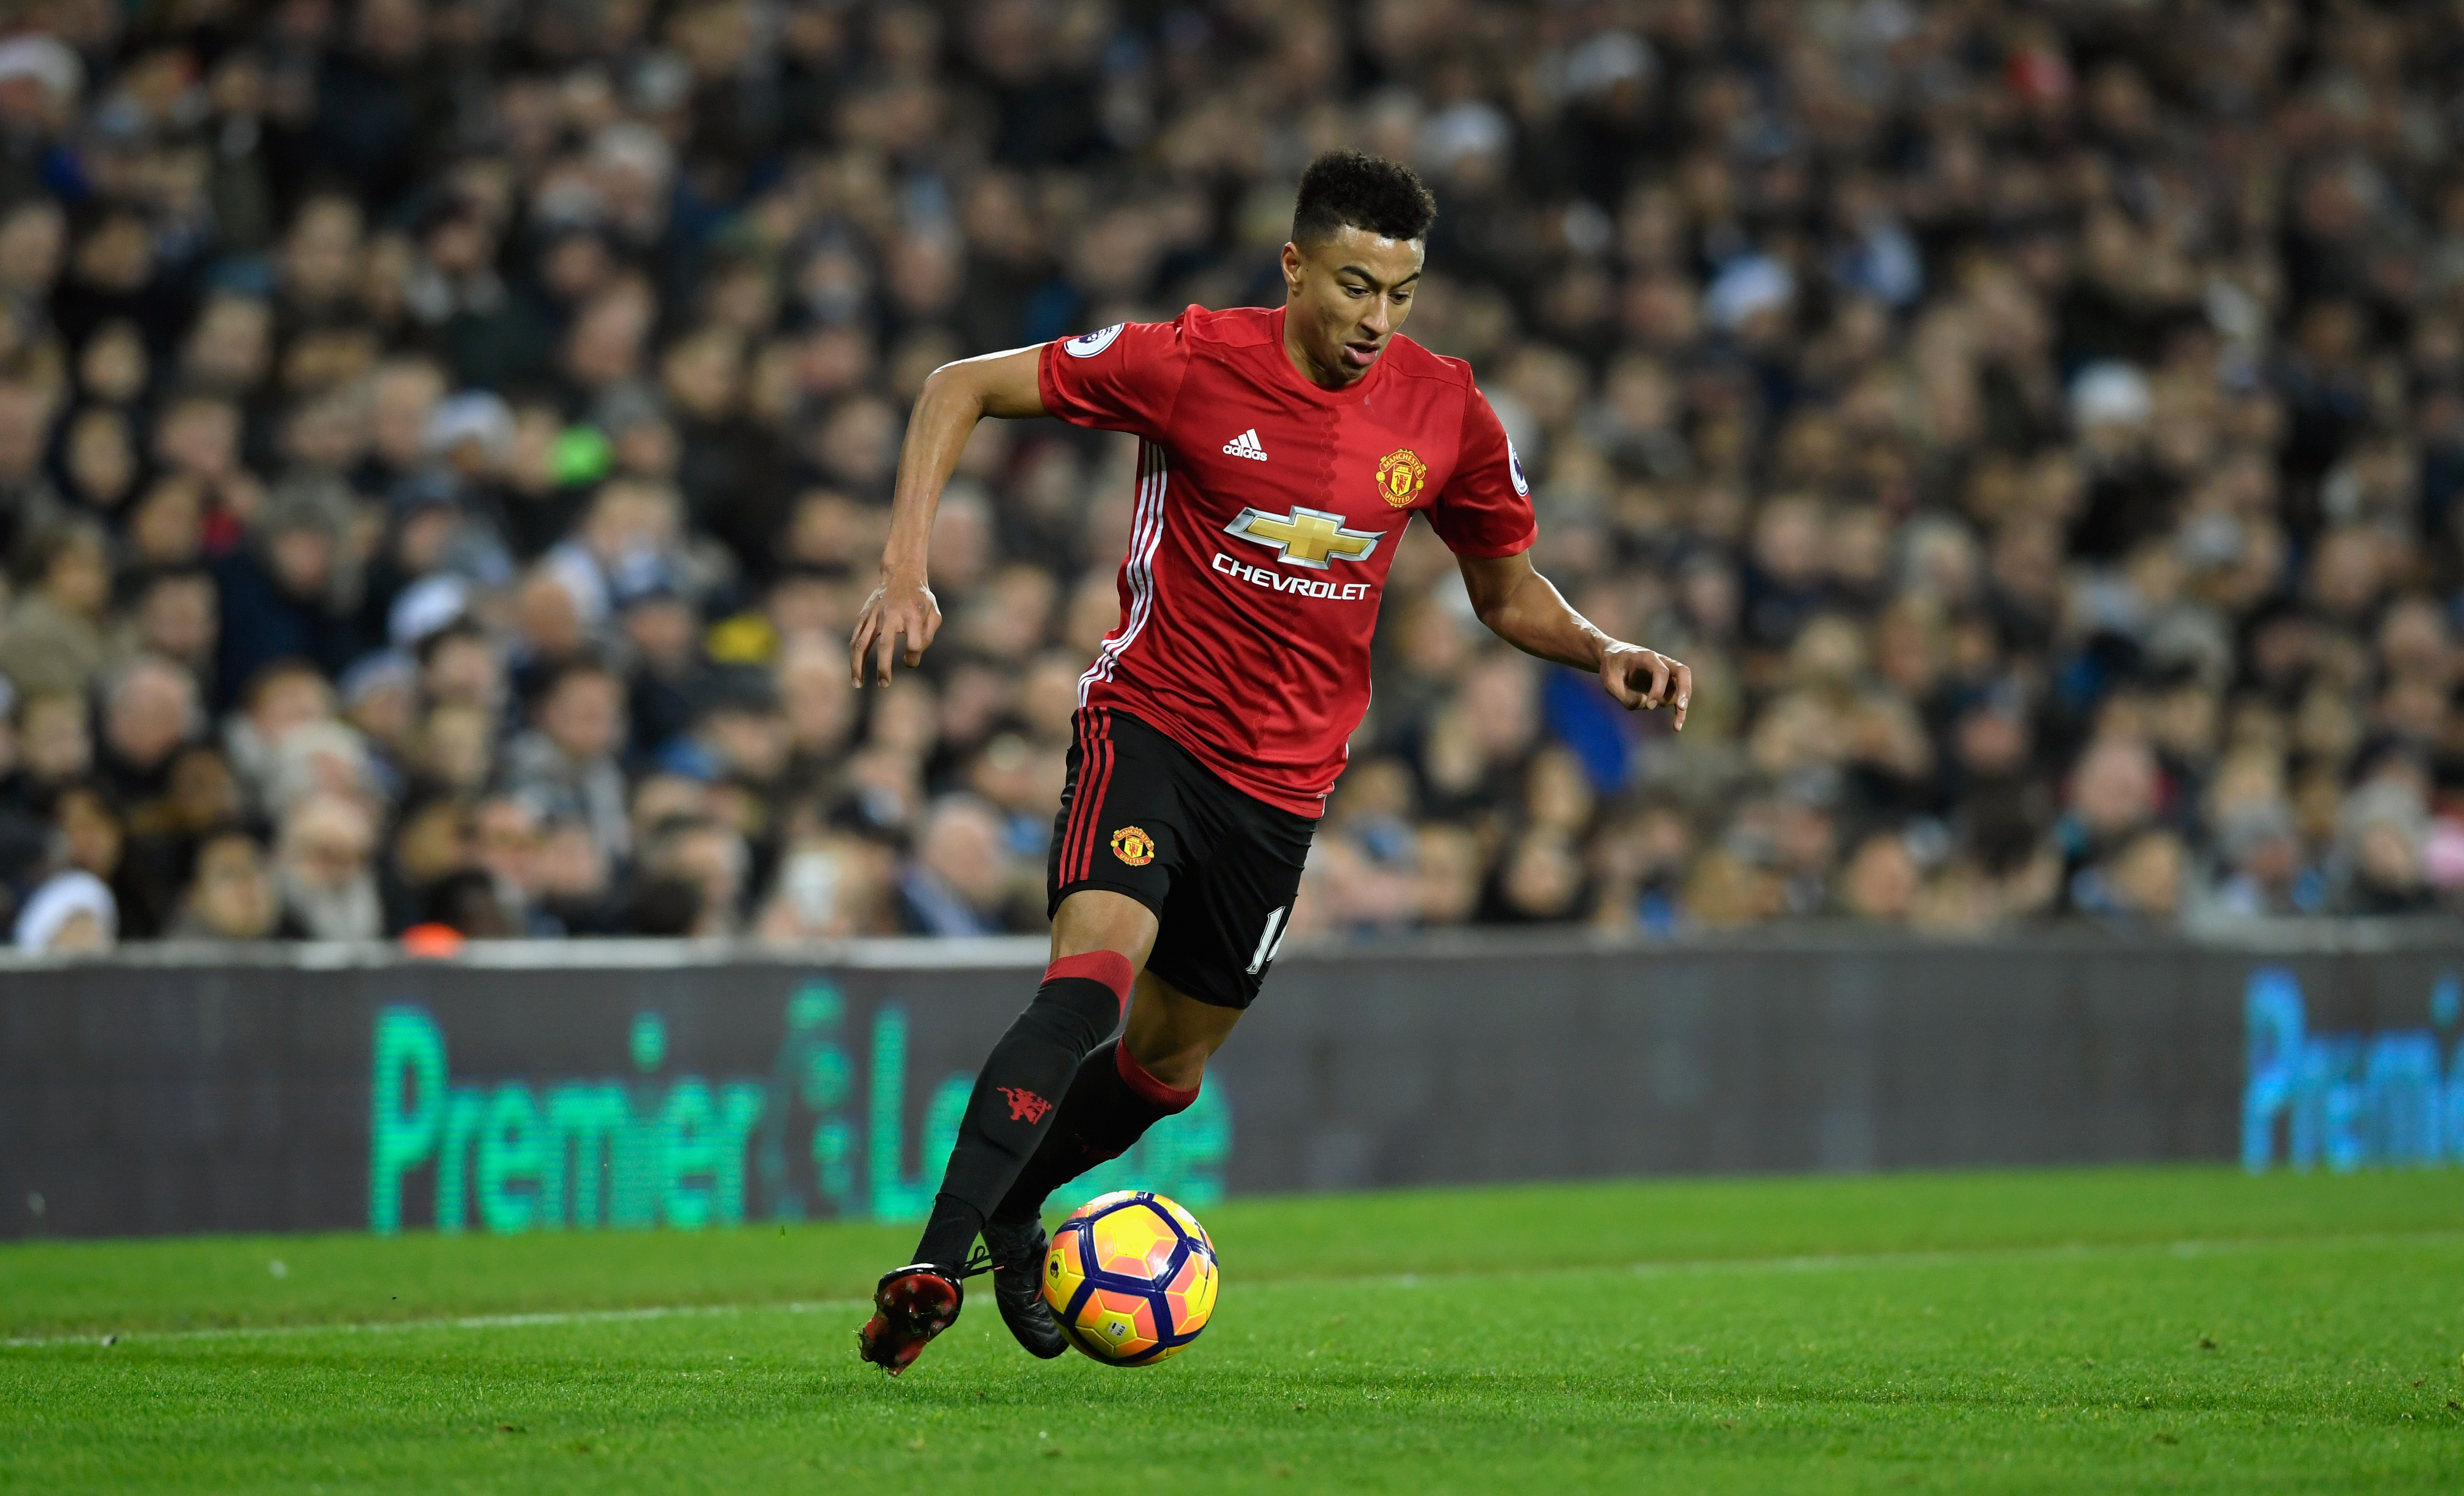 Jesse Lingard has rejected a new contract offer from Manchester United as he continues to seek out exactly where he stands in the club's hierarchy.